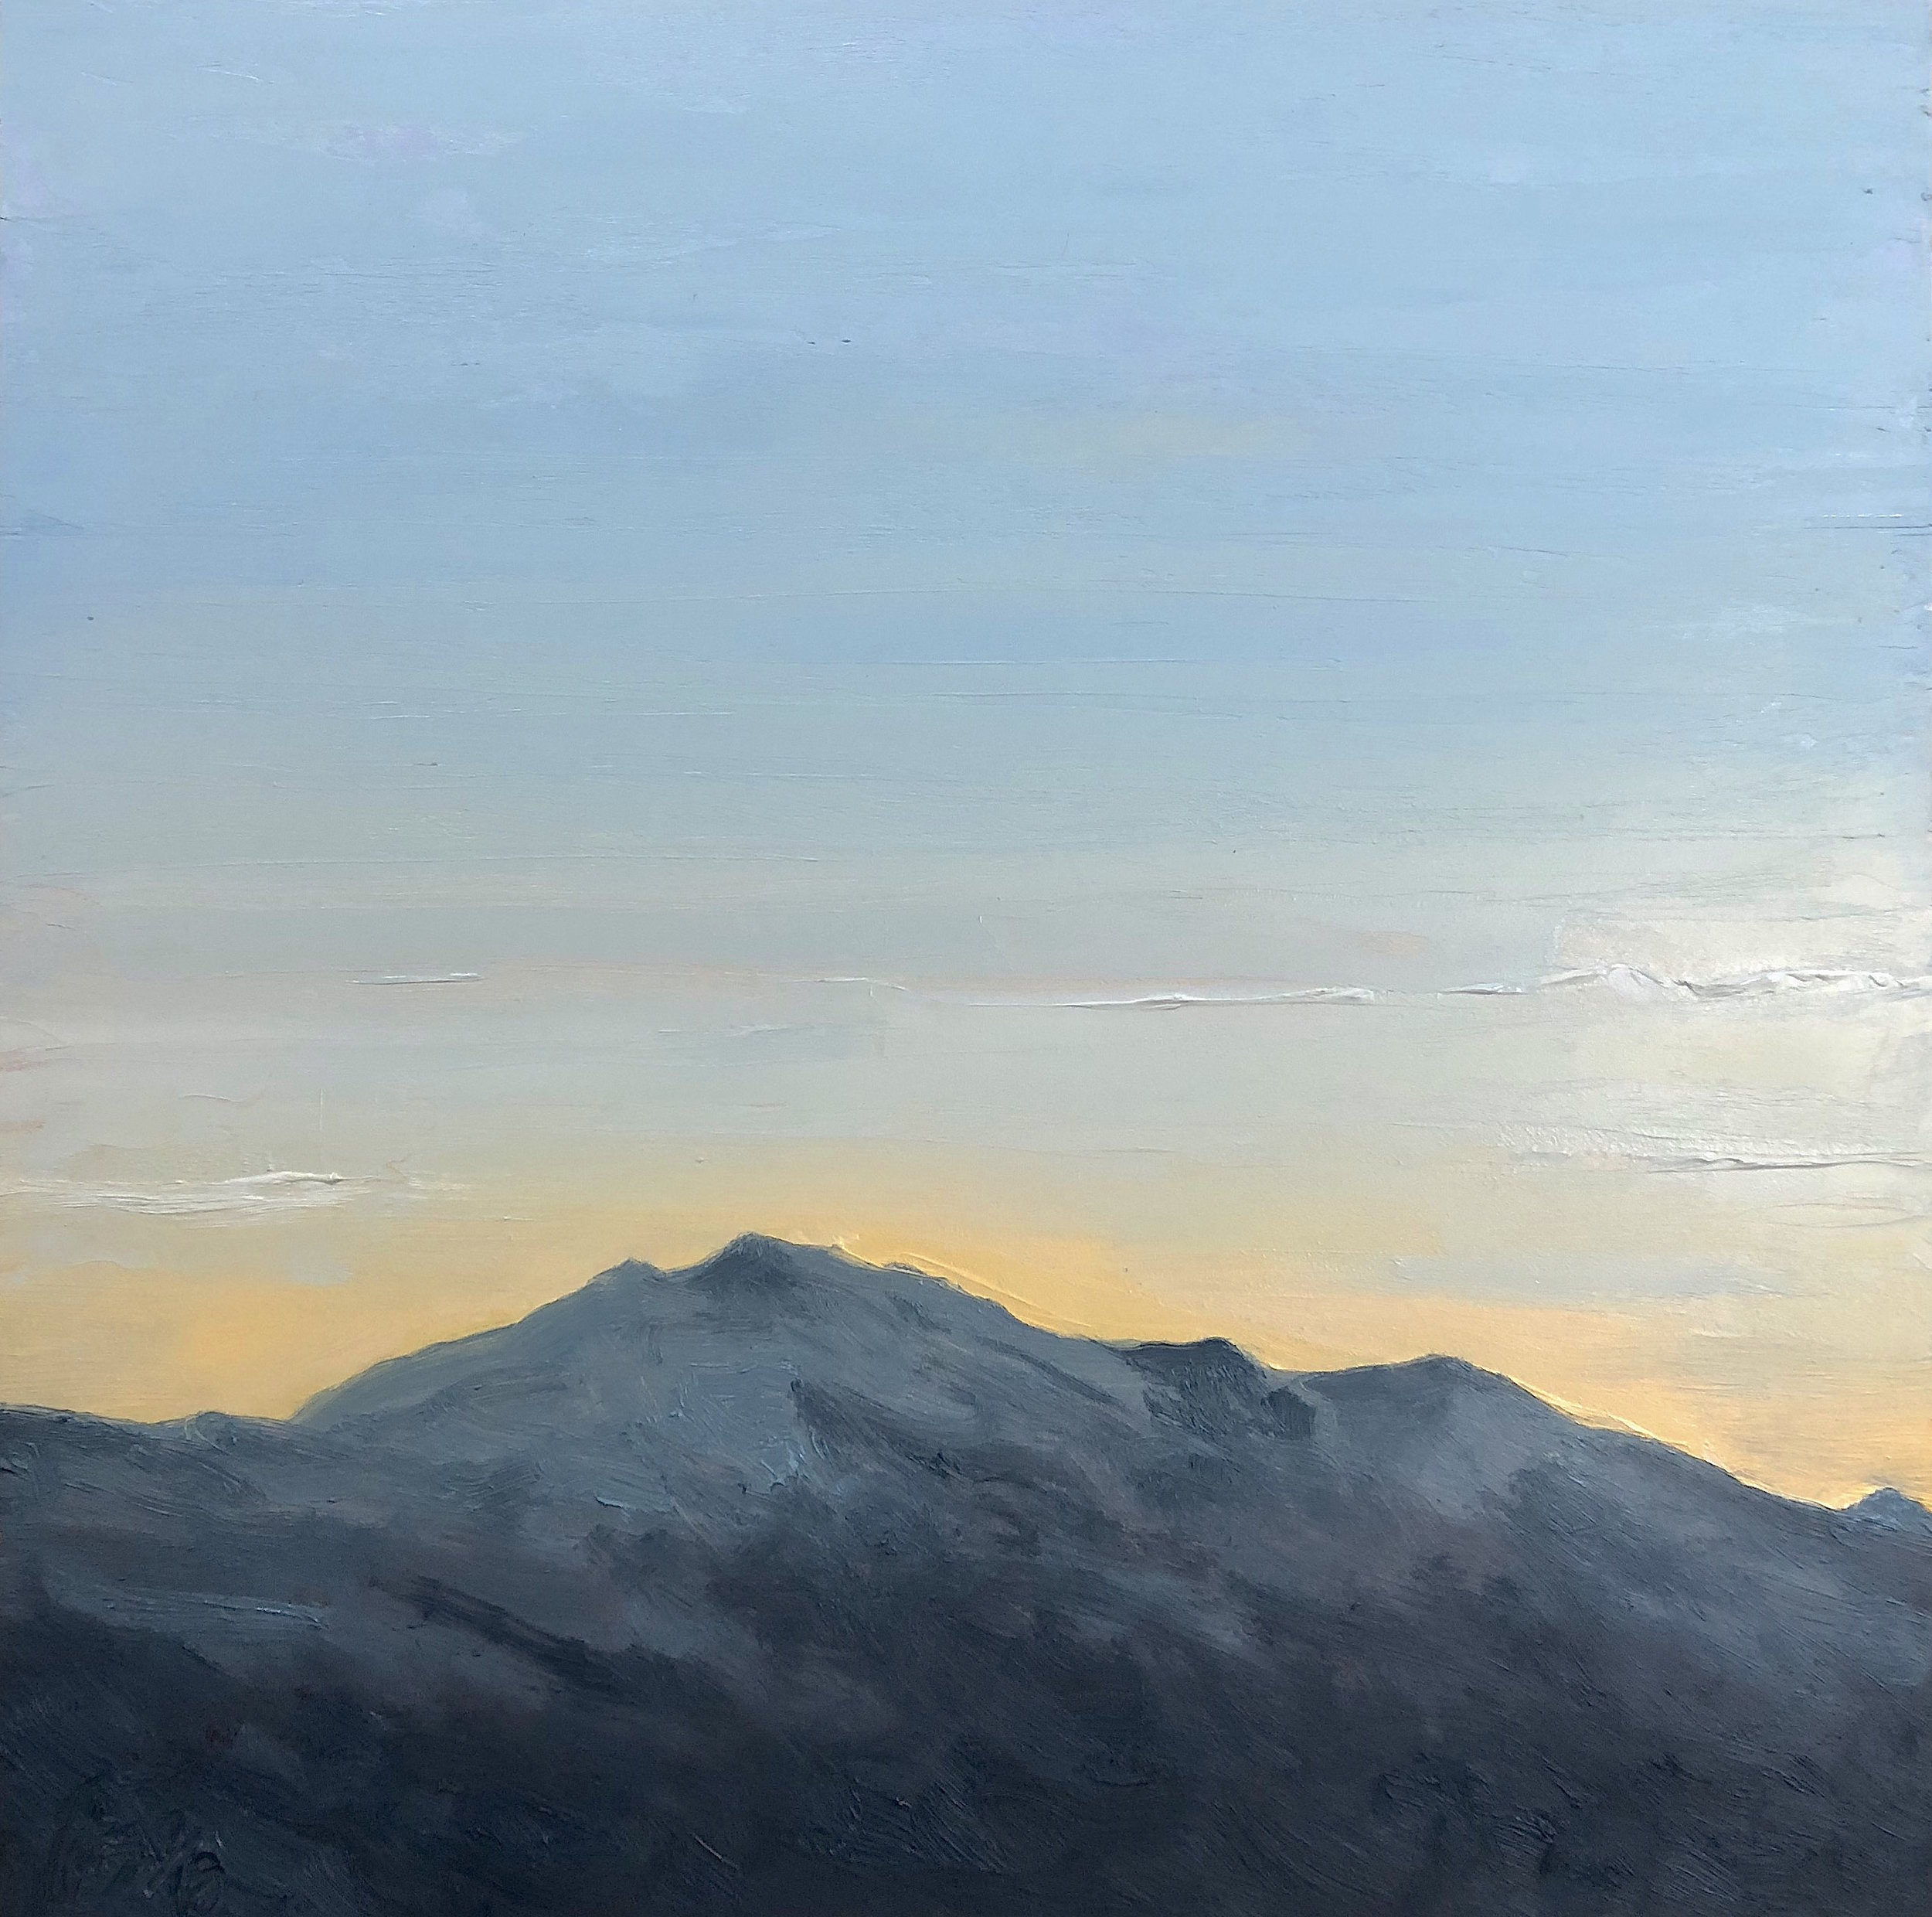 Mt. Washington 7-6-2018, from the 36 Views of Mt. Washington series, oil on board, 12 by 12 inches, 2018, $1000